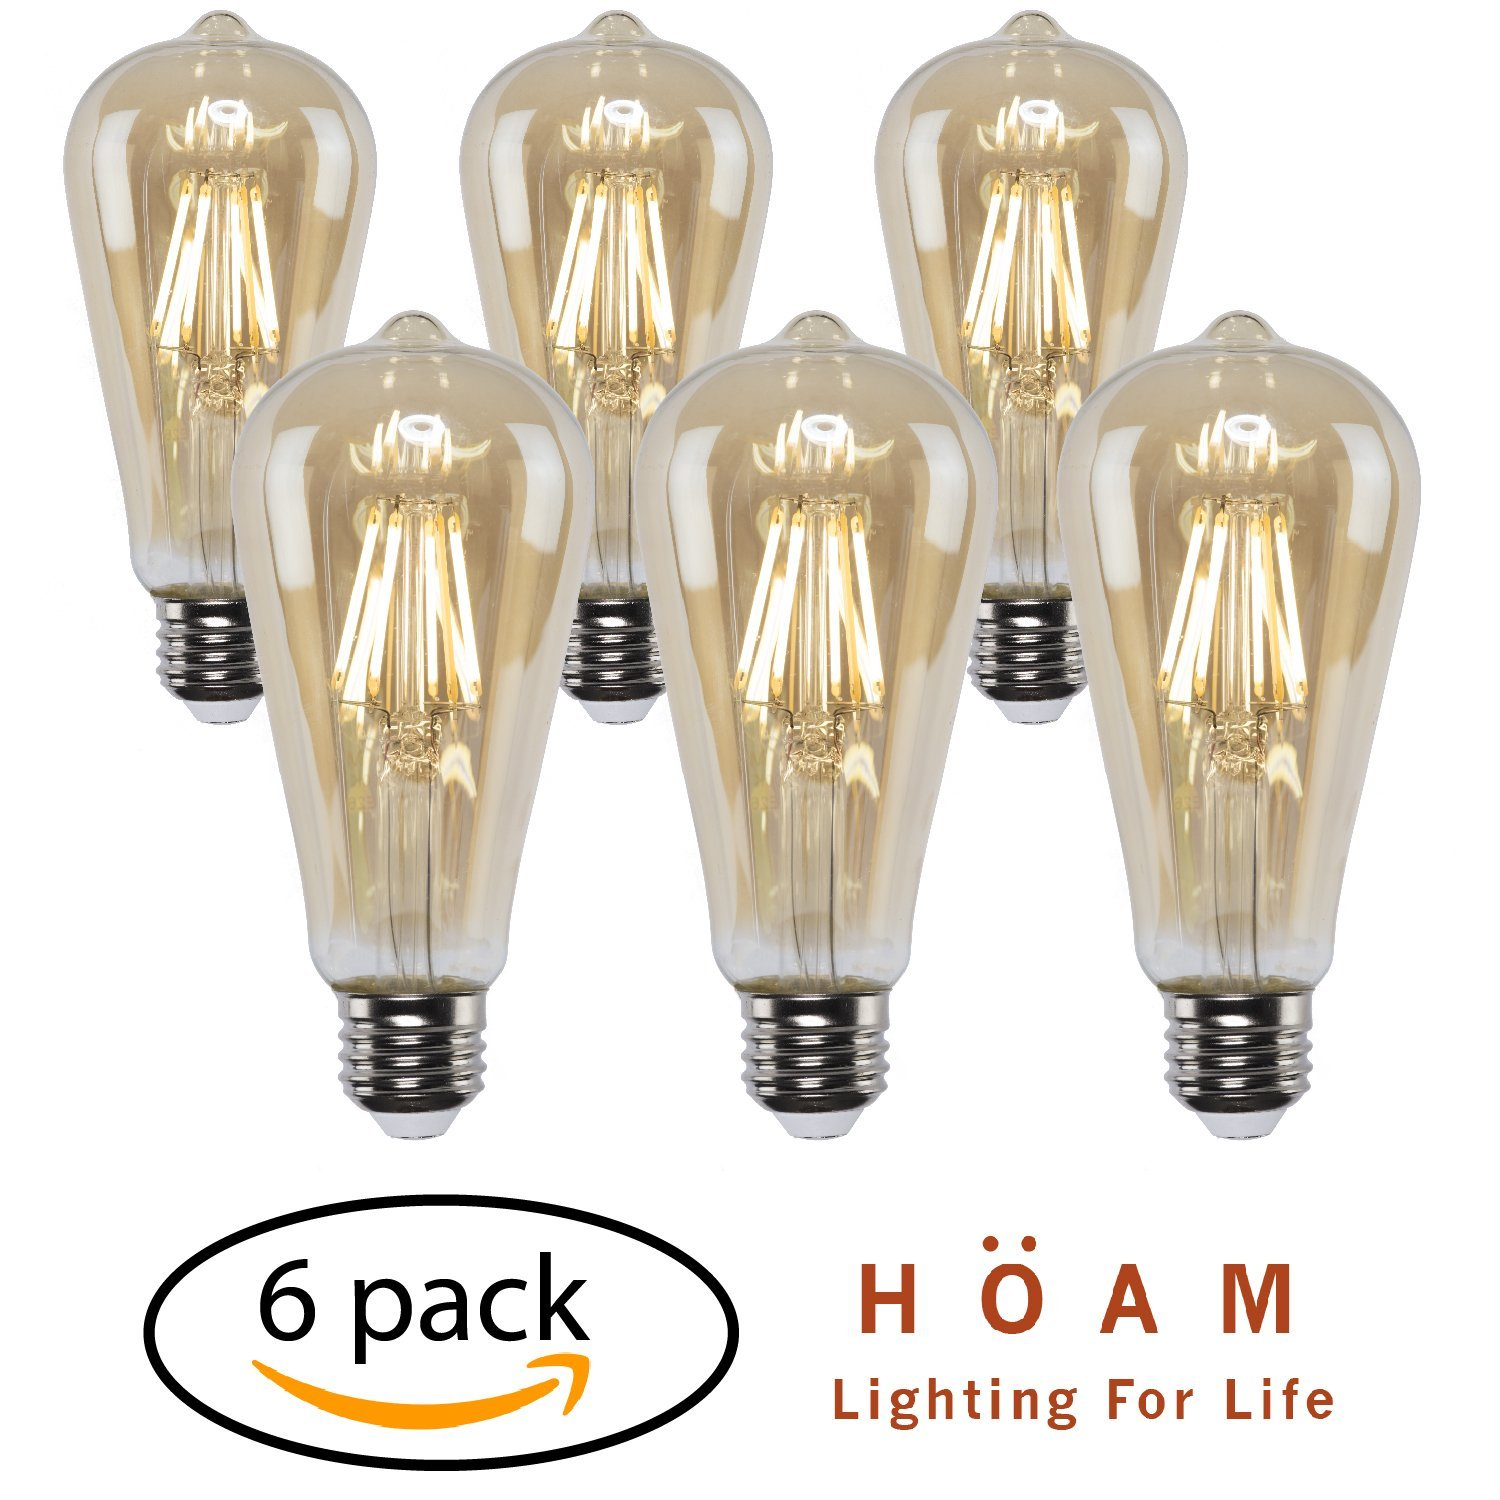 Vintage Edison Bulbs from HOAM Lighting, 6 Pack With LED Filaments, Antique Style, 6W LED 60W Equivalent, 2700K Warm Color Temperature, ST18 ST64, E26 E27 Base, 120V